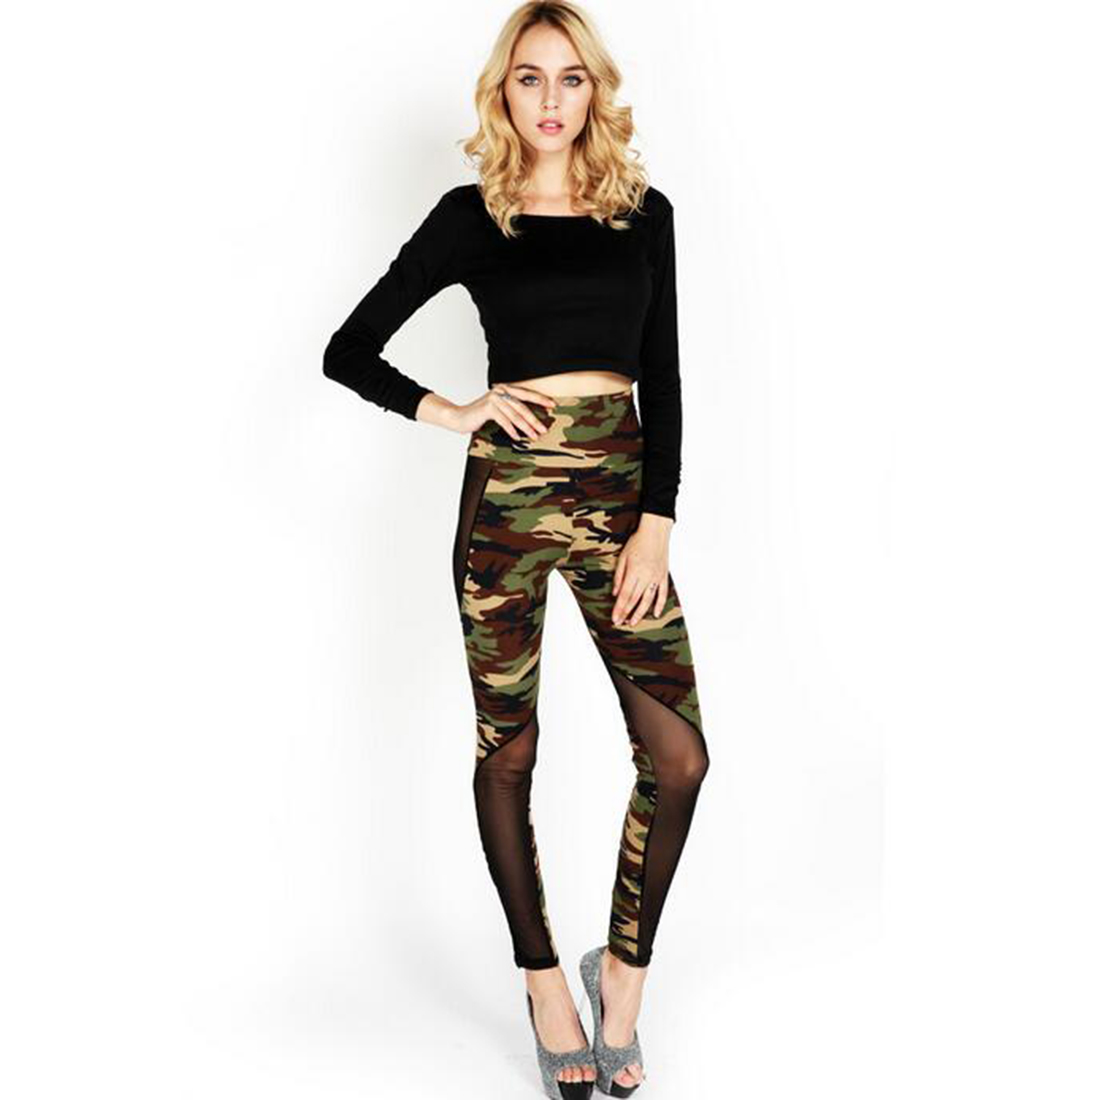 Compare Prices on Army Print Pants Women- Online Shopping/Buy Low ...